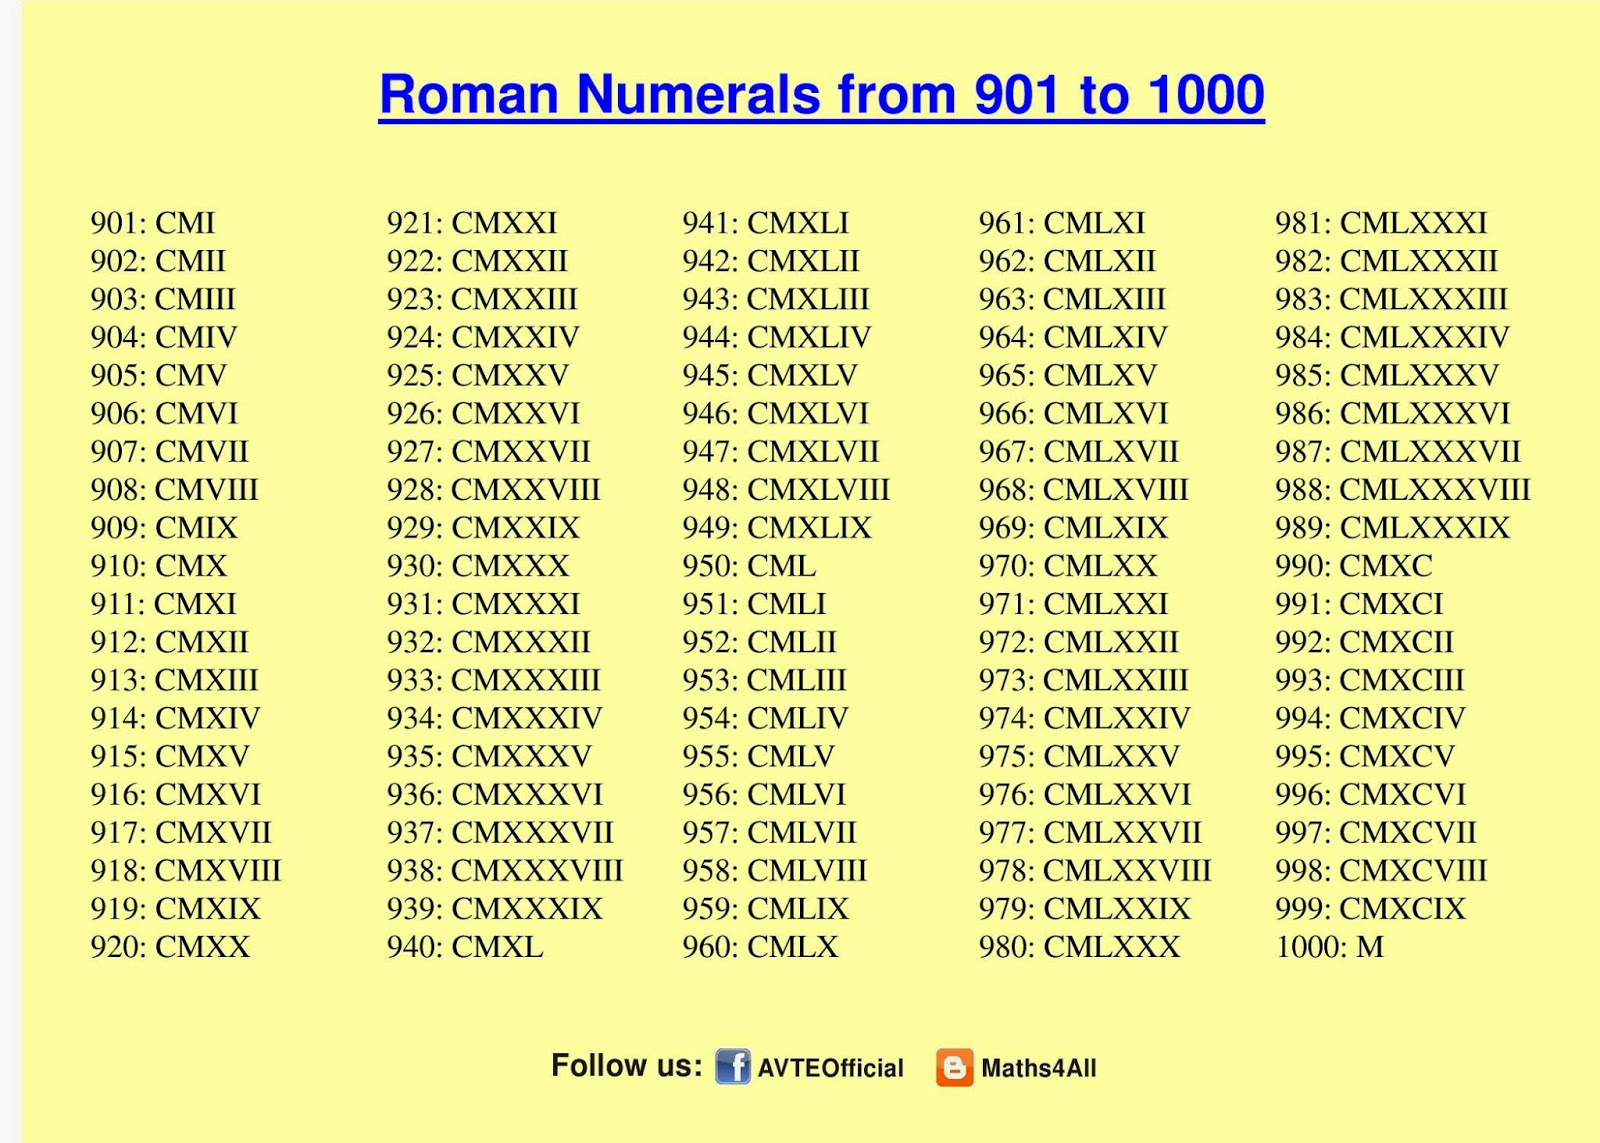 Worksheet Roman Number 1 To 1000 maths4all roman numerals 901 to 1000 1000